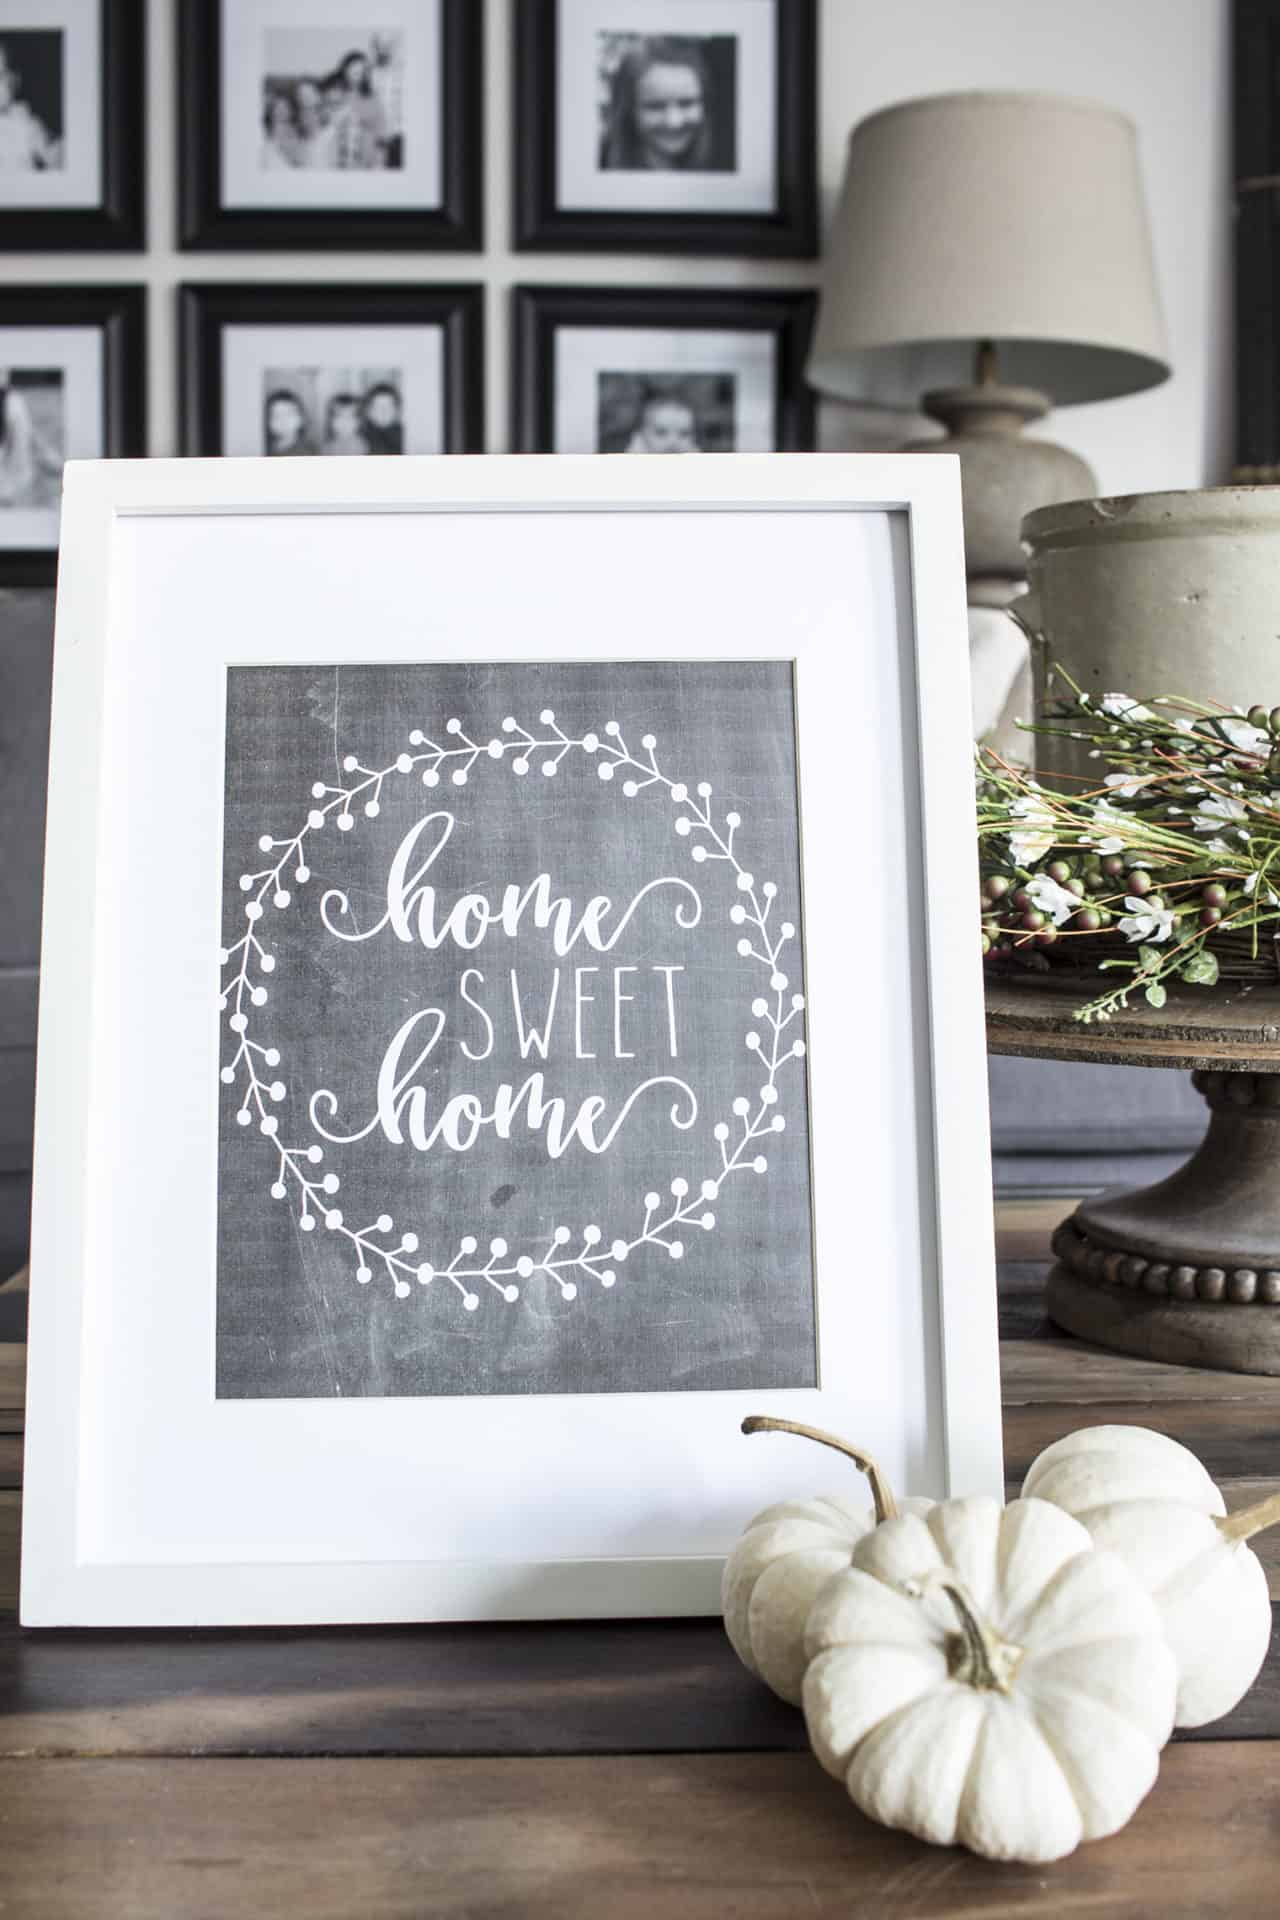 ATTACHMENT DETAILS home-sweet-home-free-chalkboard-printable.jpg September 7, 2018 327 KB 1520 × 2280 Edit Image Delete Permanently URL https://homemadelovely.com/wp-content/uploads/2018/09/home-sweet-home-free-chalkboard-printable.jpg Title